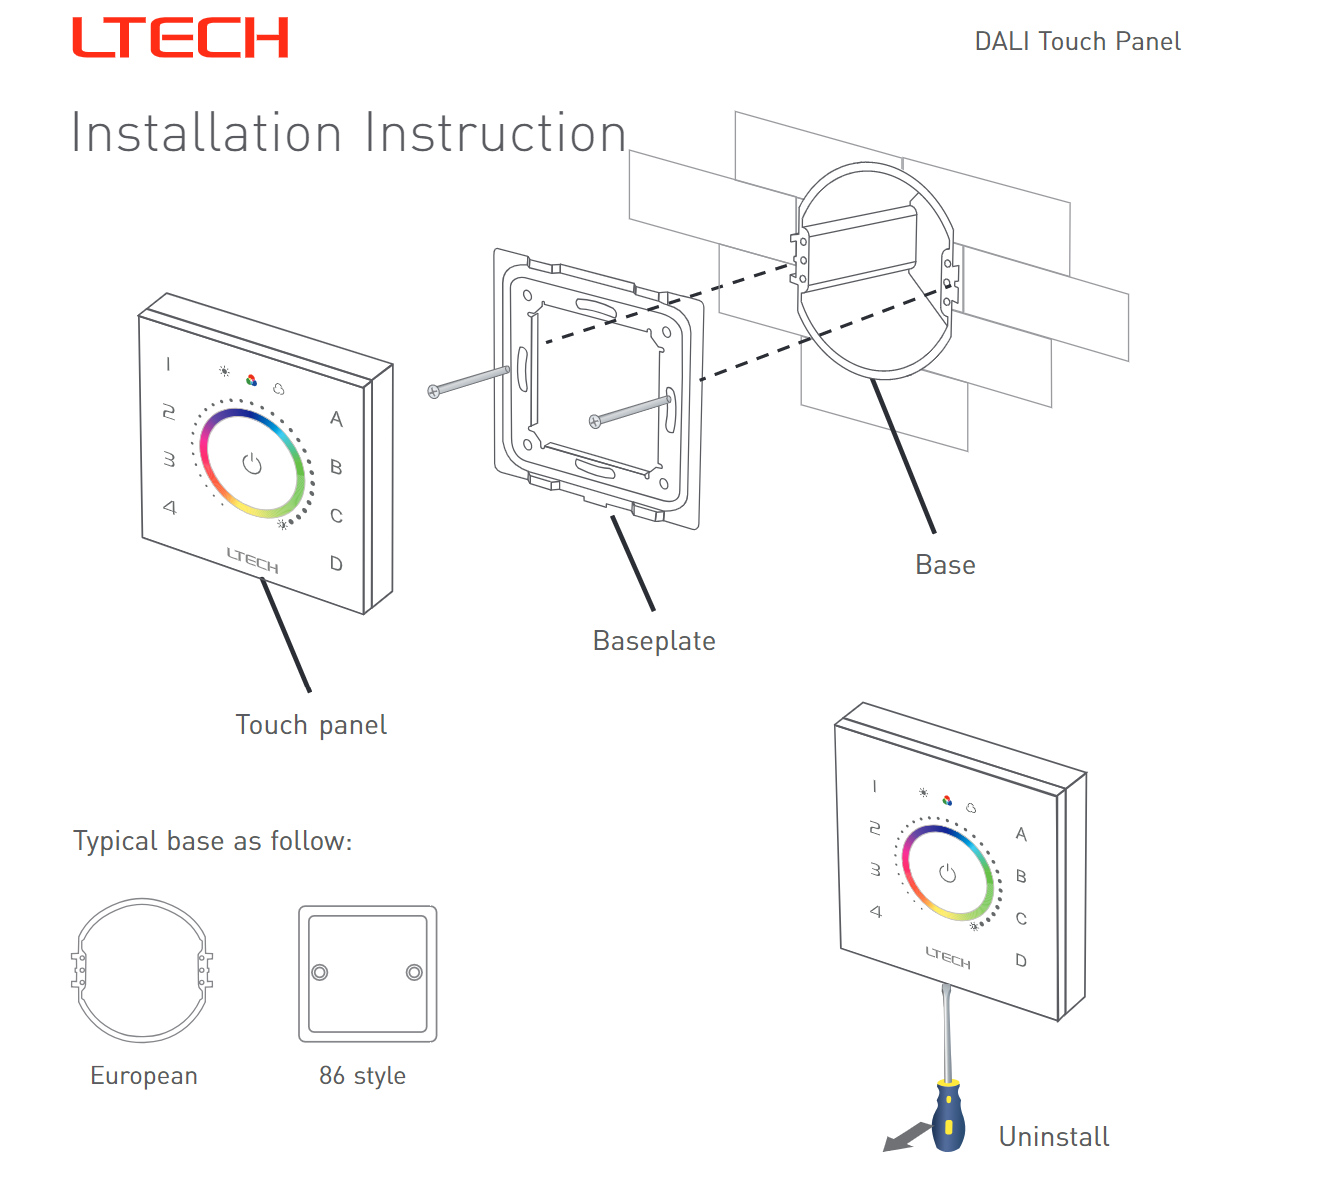 Ltech_EDT2_DALI_CT_Touch_Panel_Master_Led_Controller_3